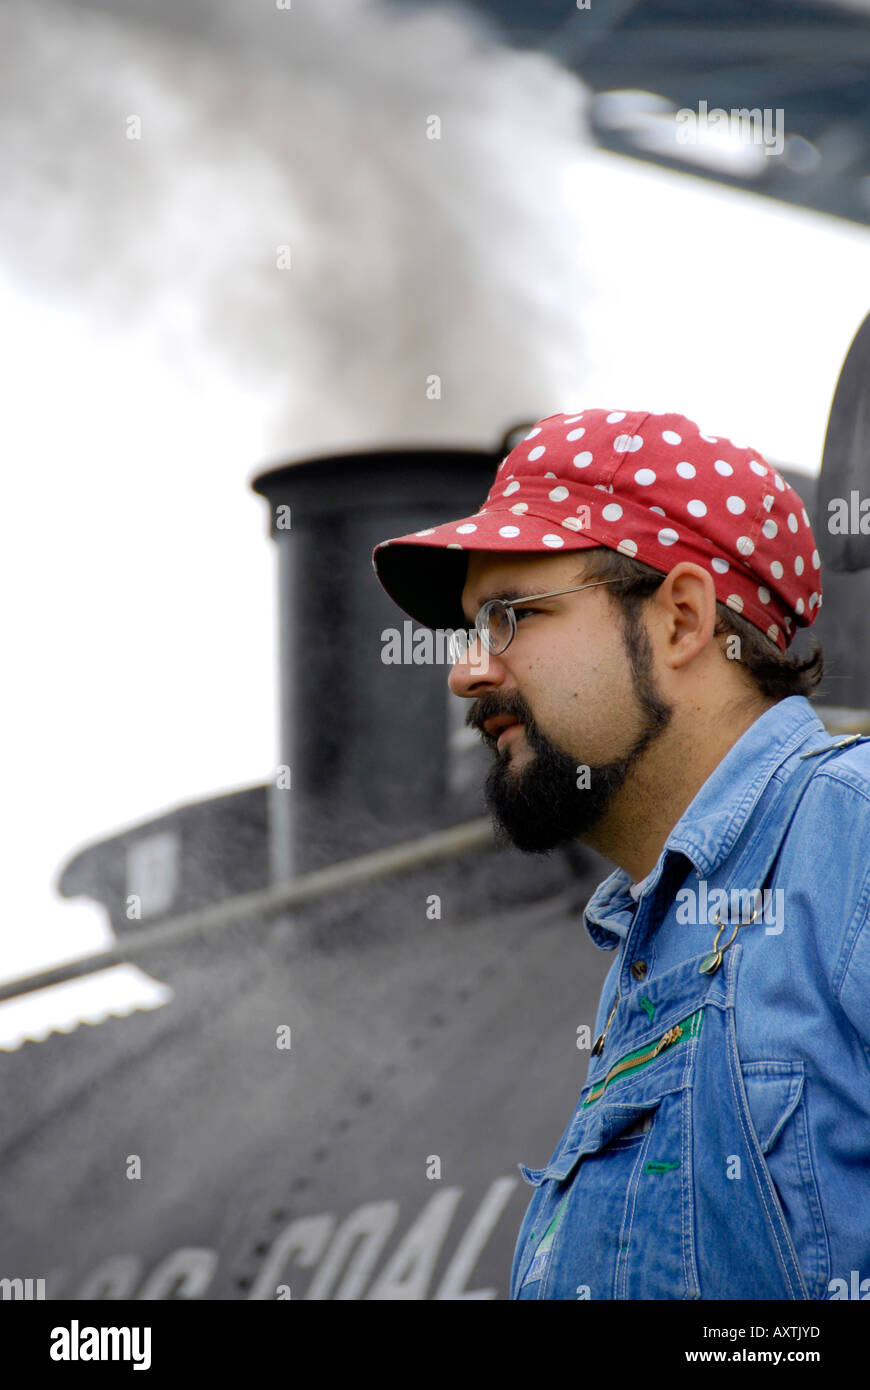 Historic steam Train locomotive engineer portrait with red and white pocodot hat - Stock Image